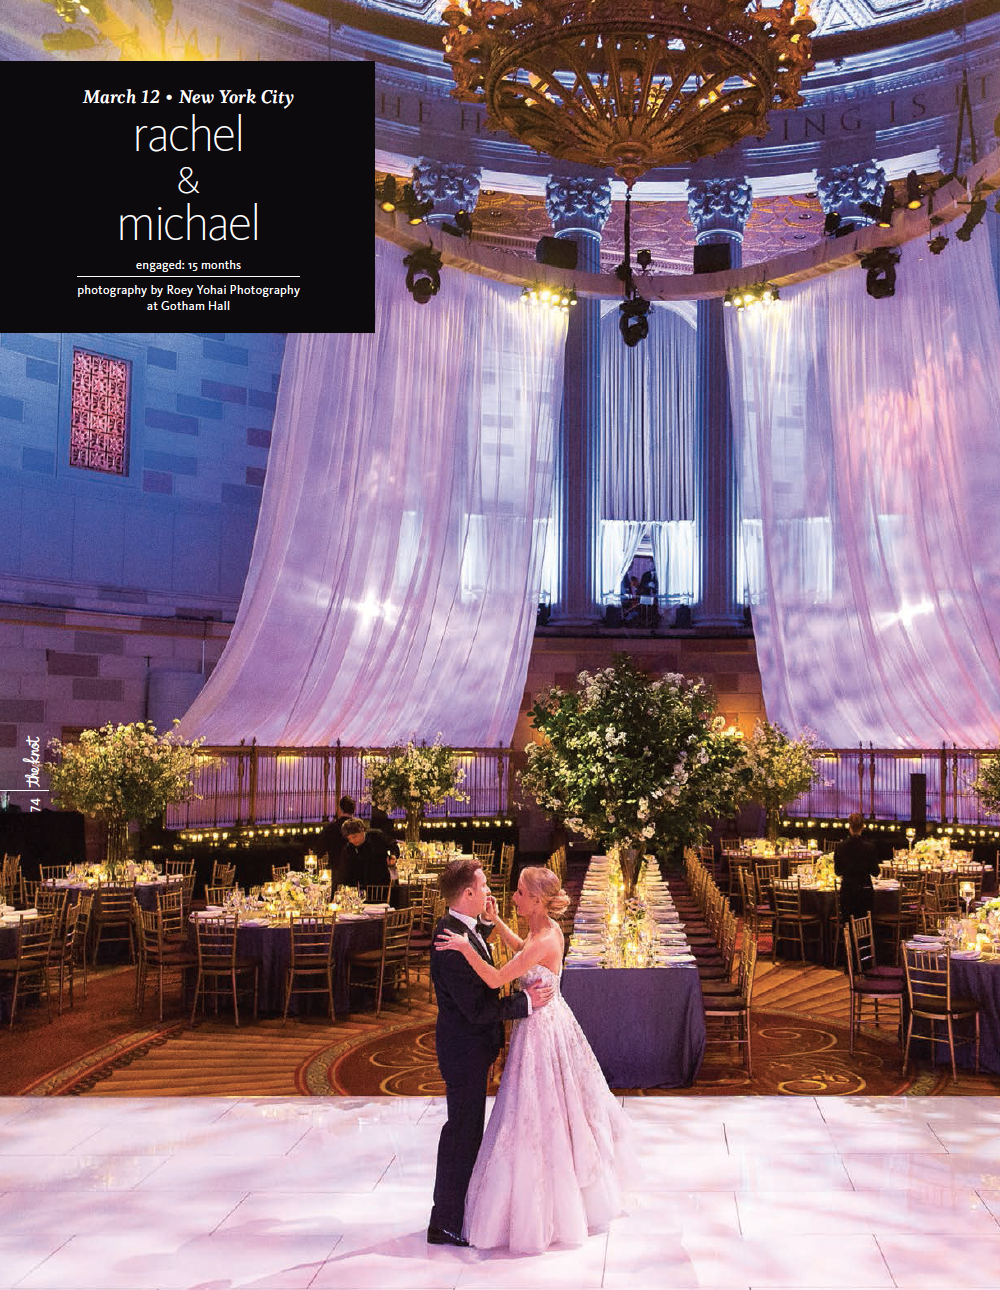 The Knot: Rachel and Michael